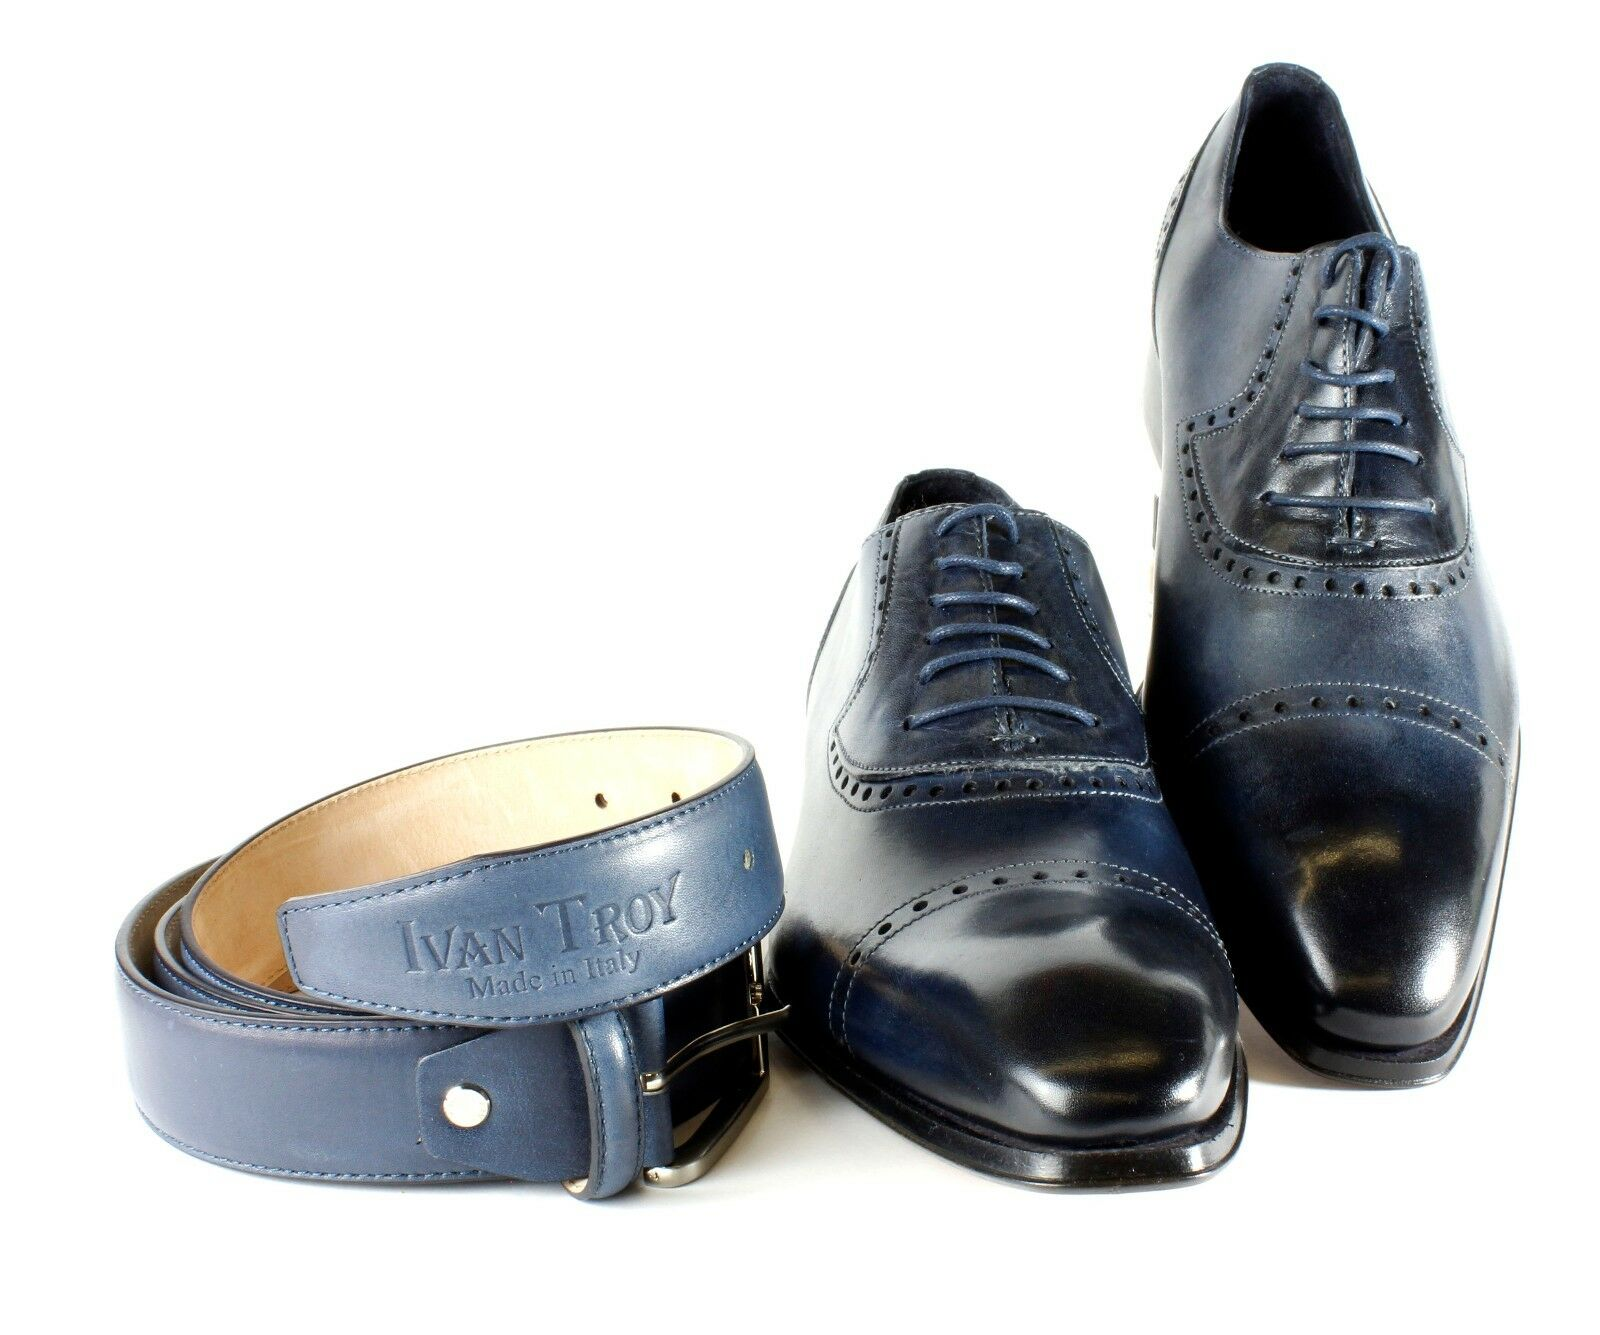 Ivan Troy Leather Blue Lamine Handmade Italian Leather Troy Dress Shoes/Oxford Shoes/MenShoes 54196c